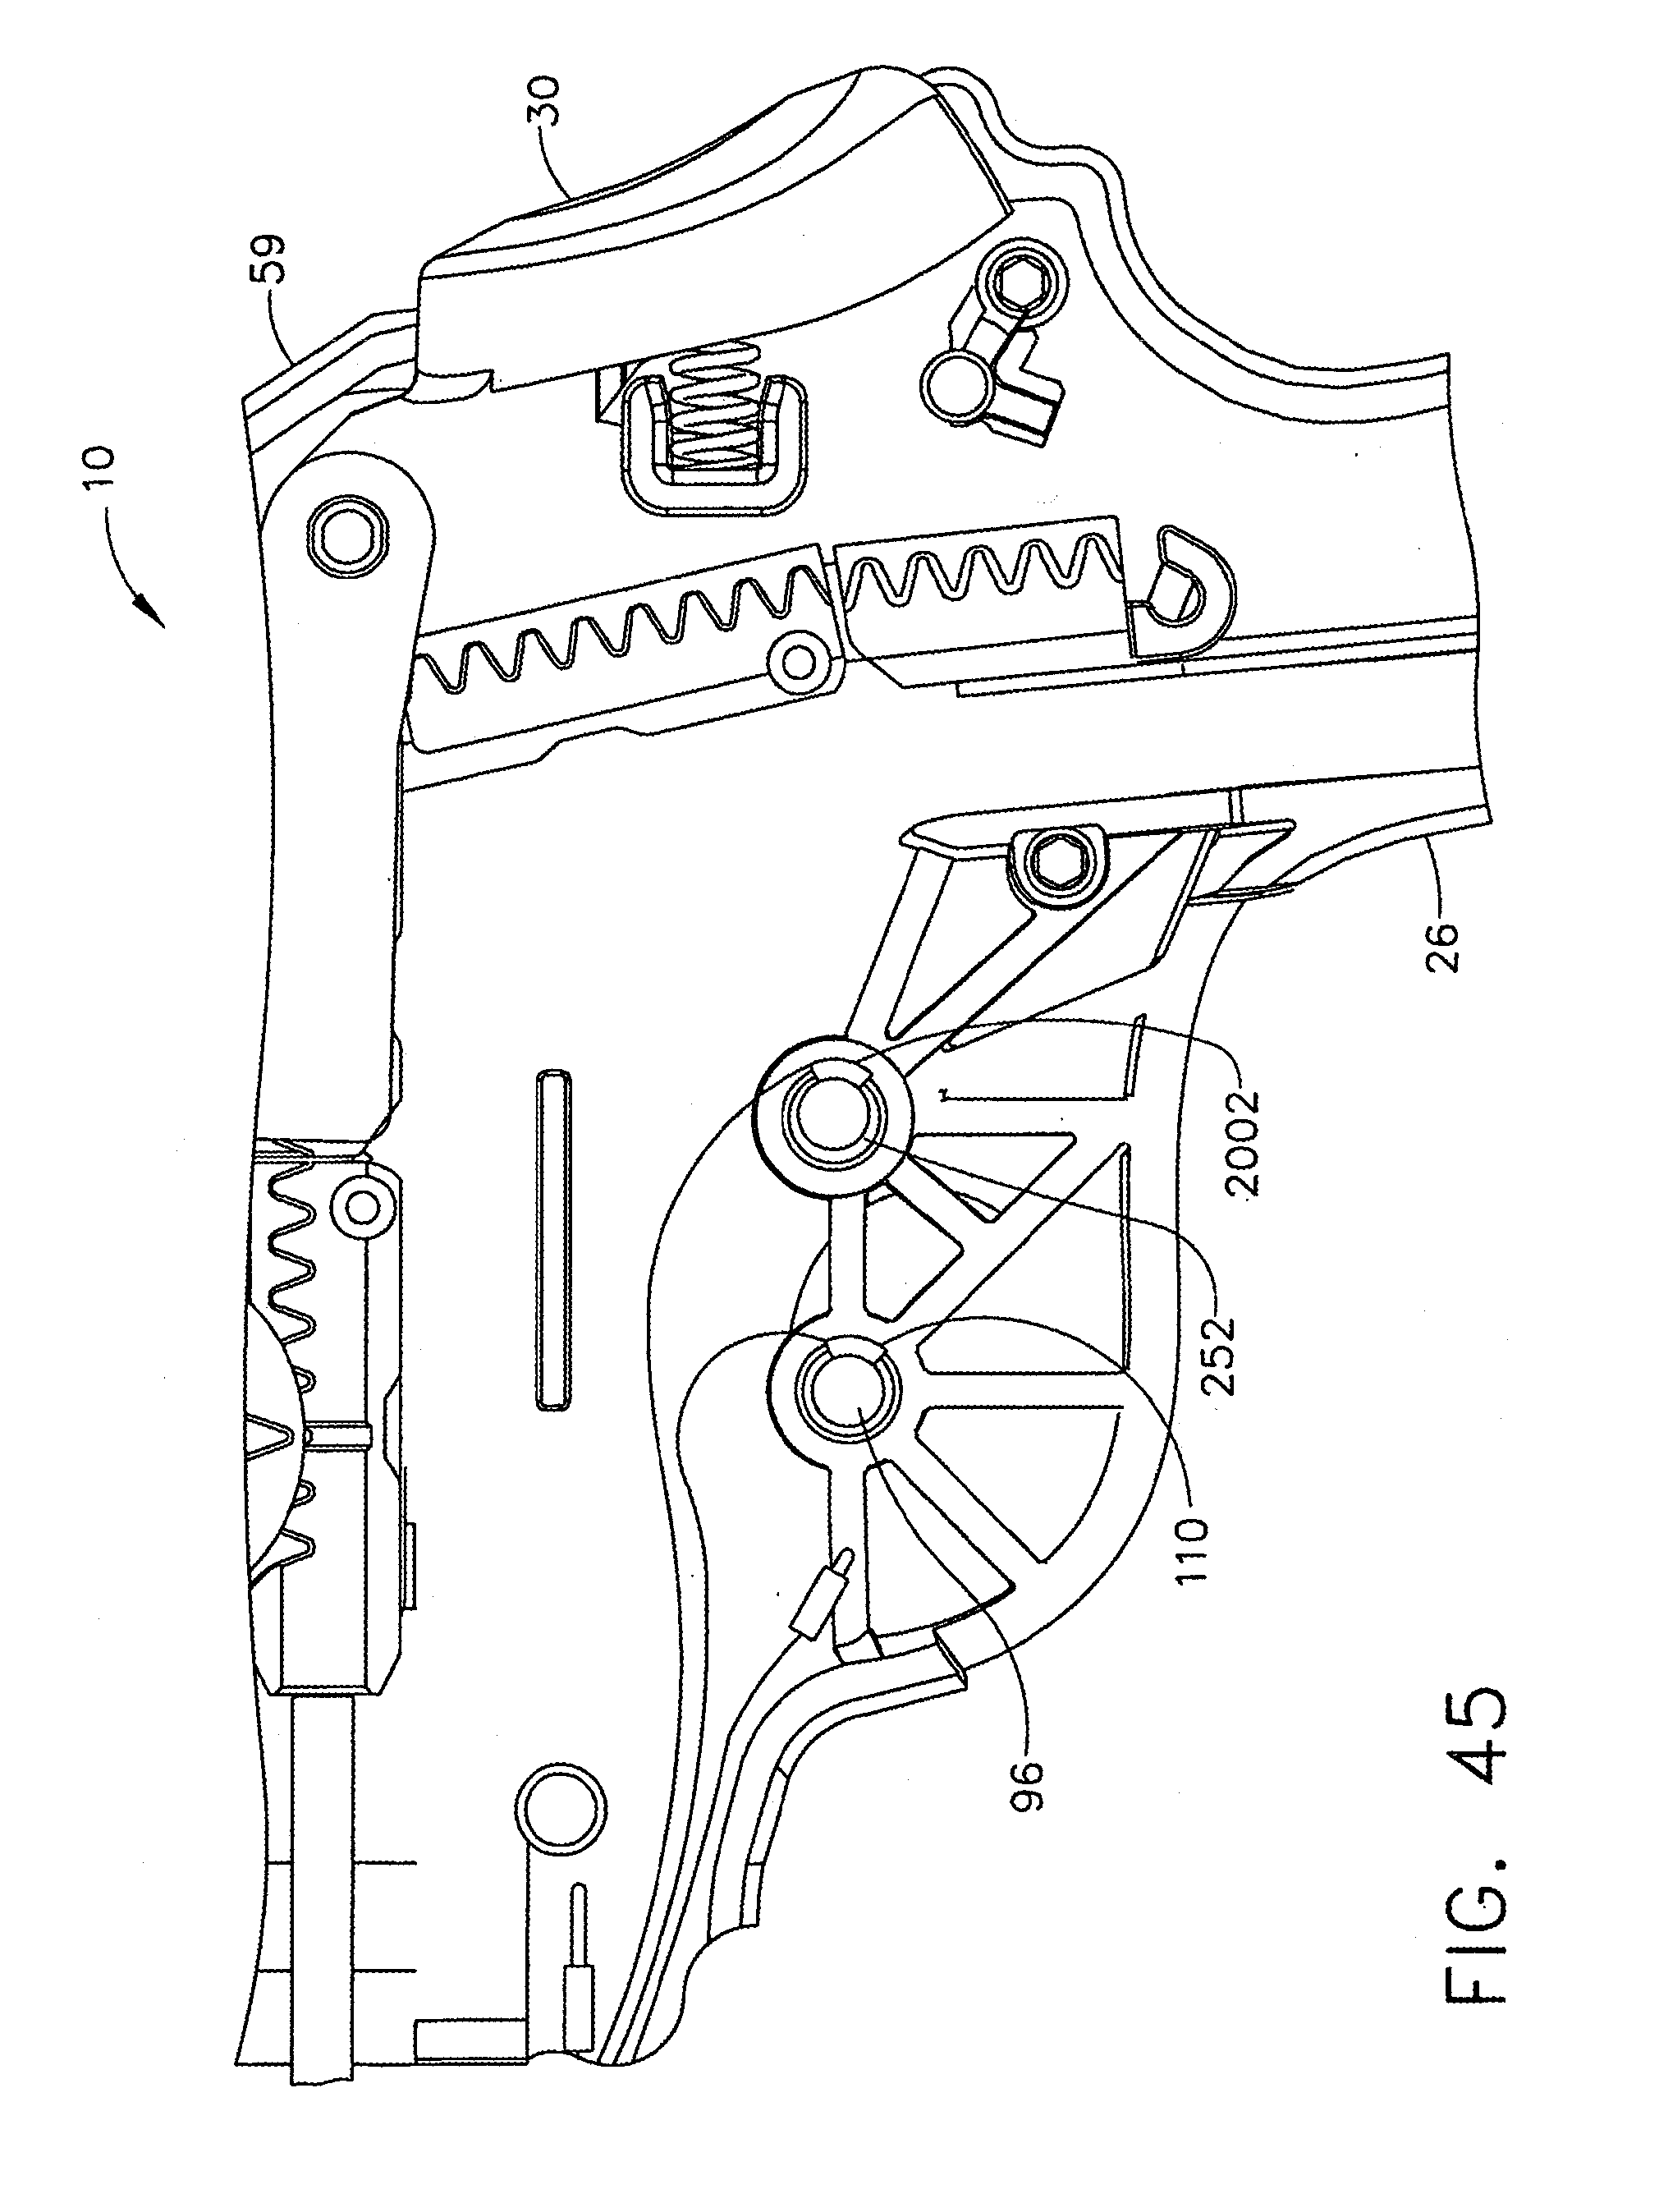 us20130020375a1 surgical instrument patents Honda 3.5 Firing Order